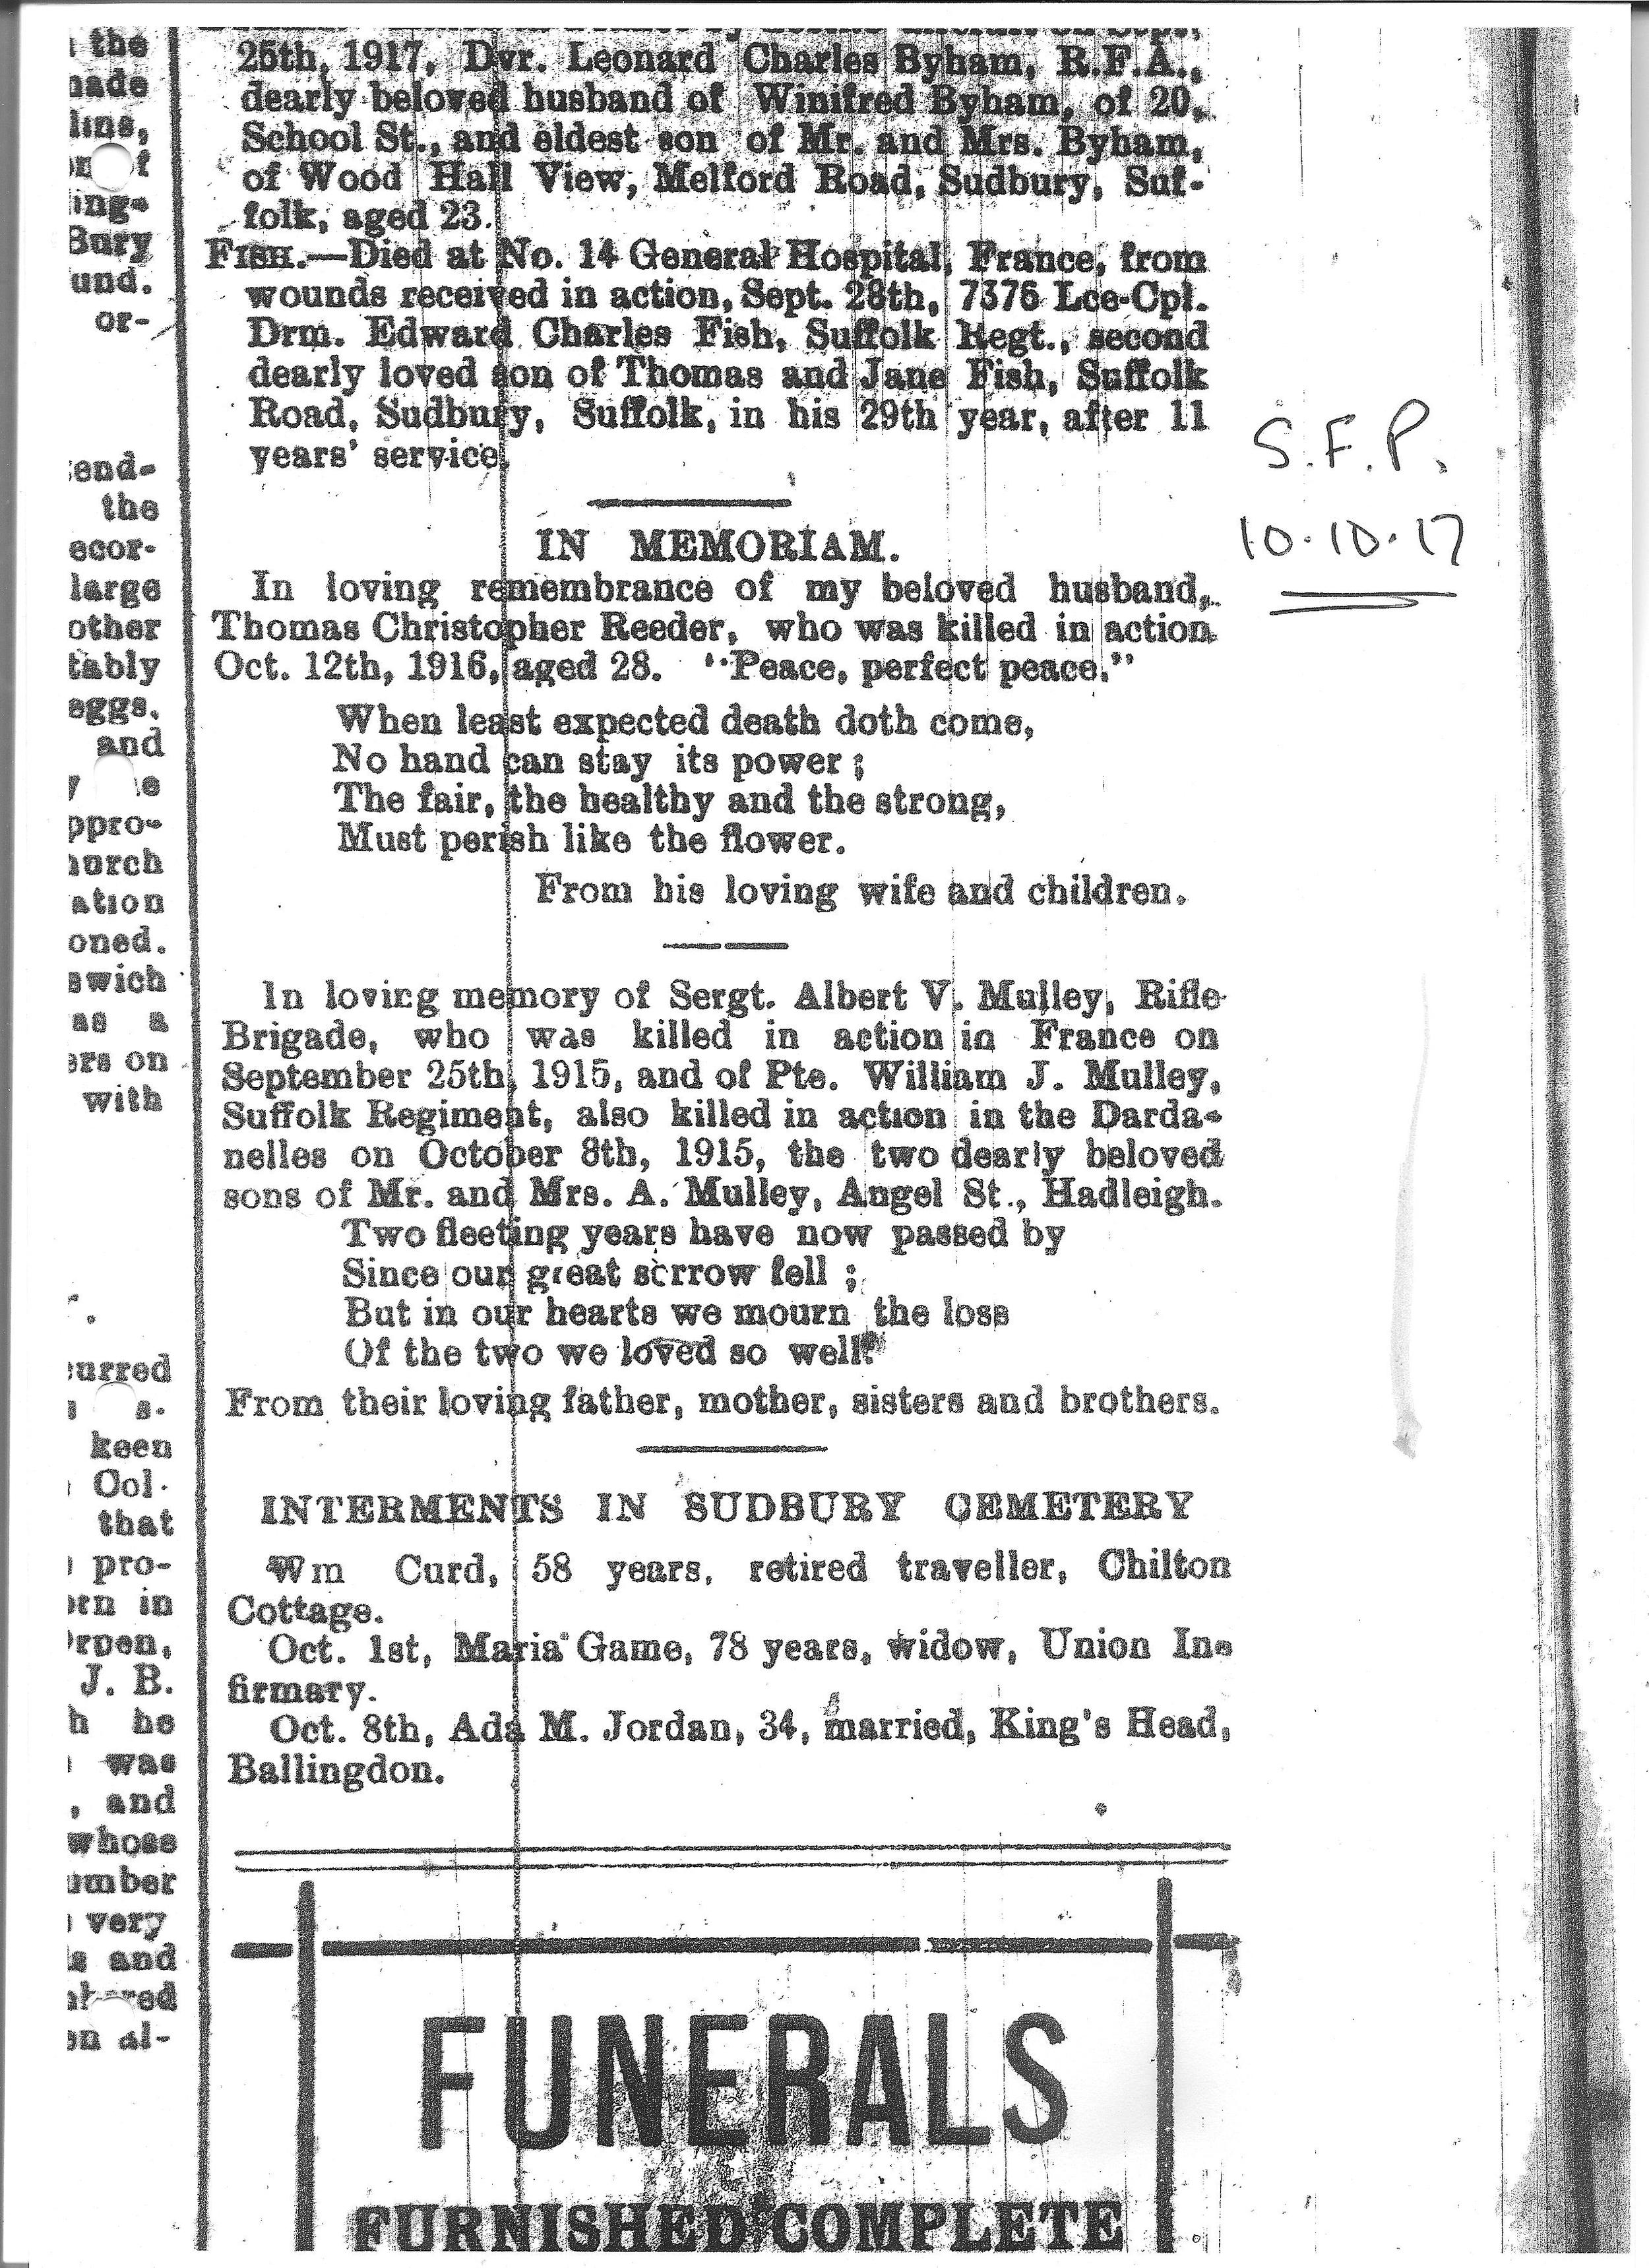 A memorial notice placed in the Suffolk Free Press in October 1917